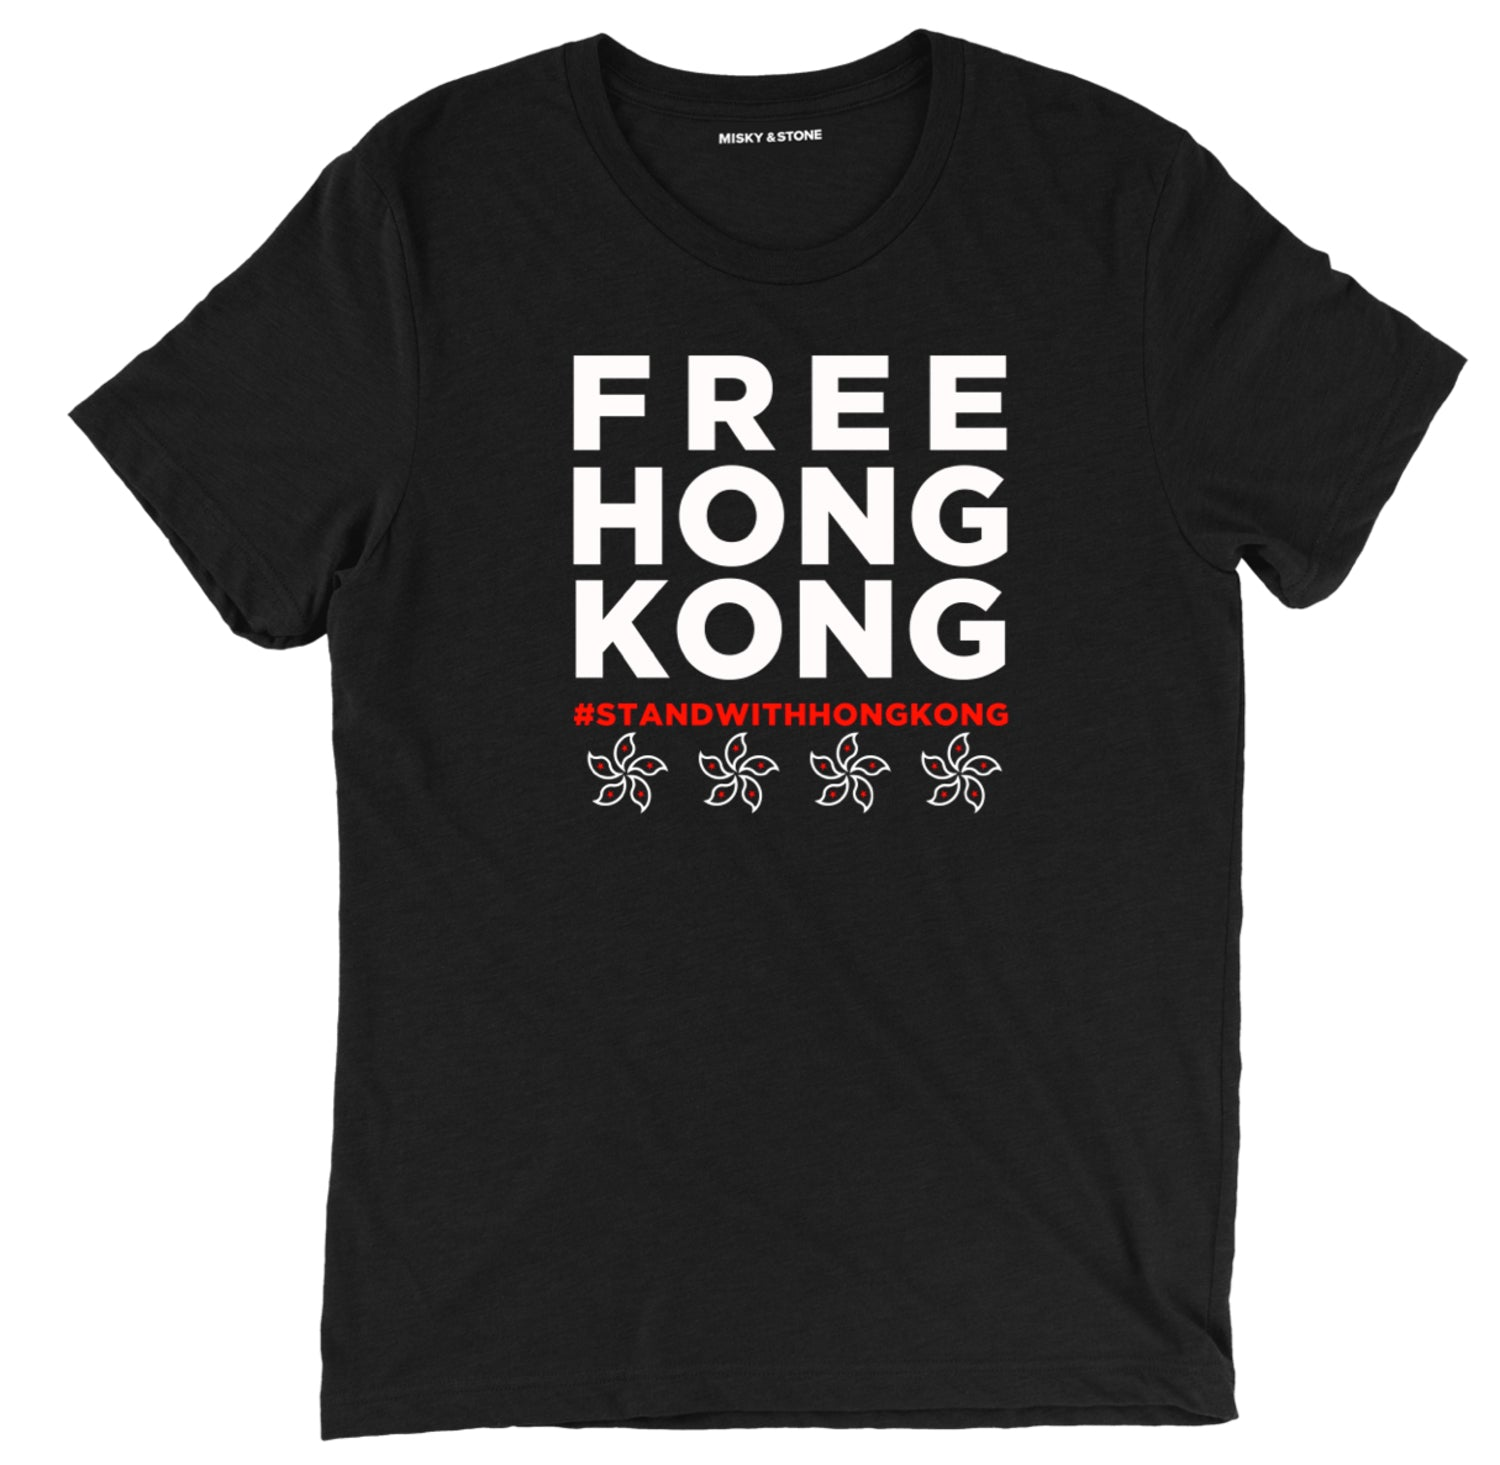 Free Hong Kong T-Shirt, support hong kong t shirt, free hong kong political tee shirts, Hong Kong Strong political clothing, Stay Strong political apparel, Stand with Hong Kong political merch